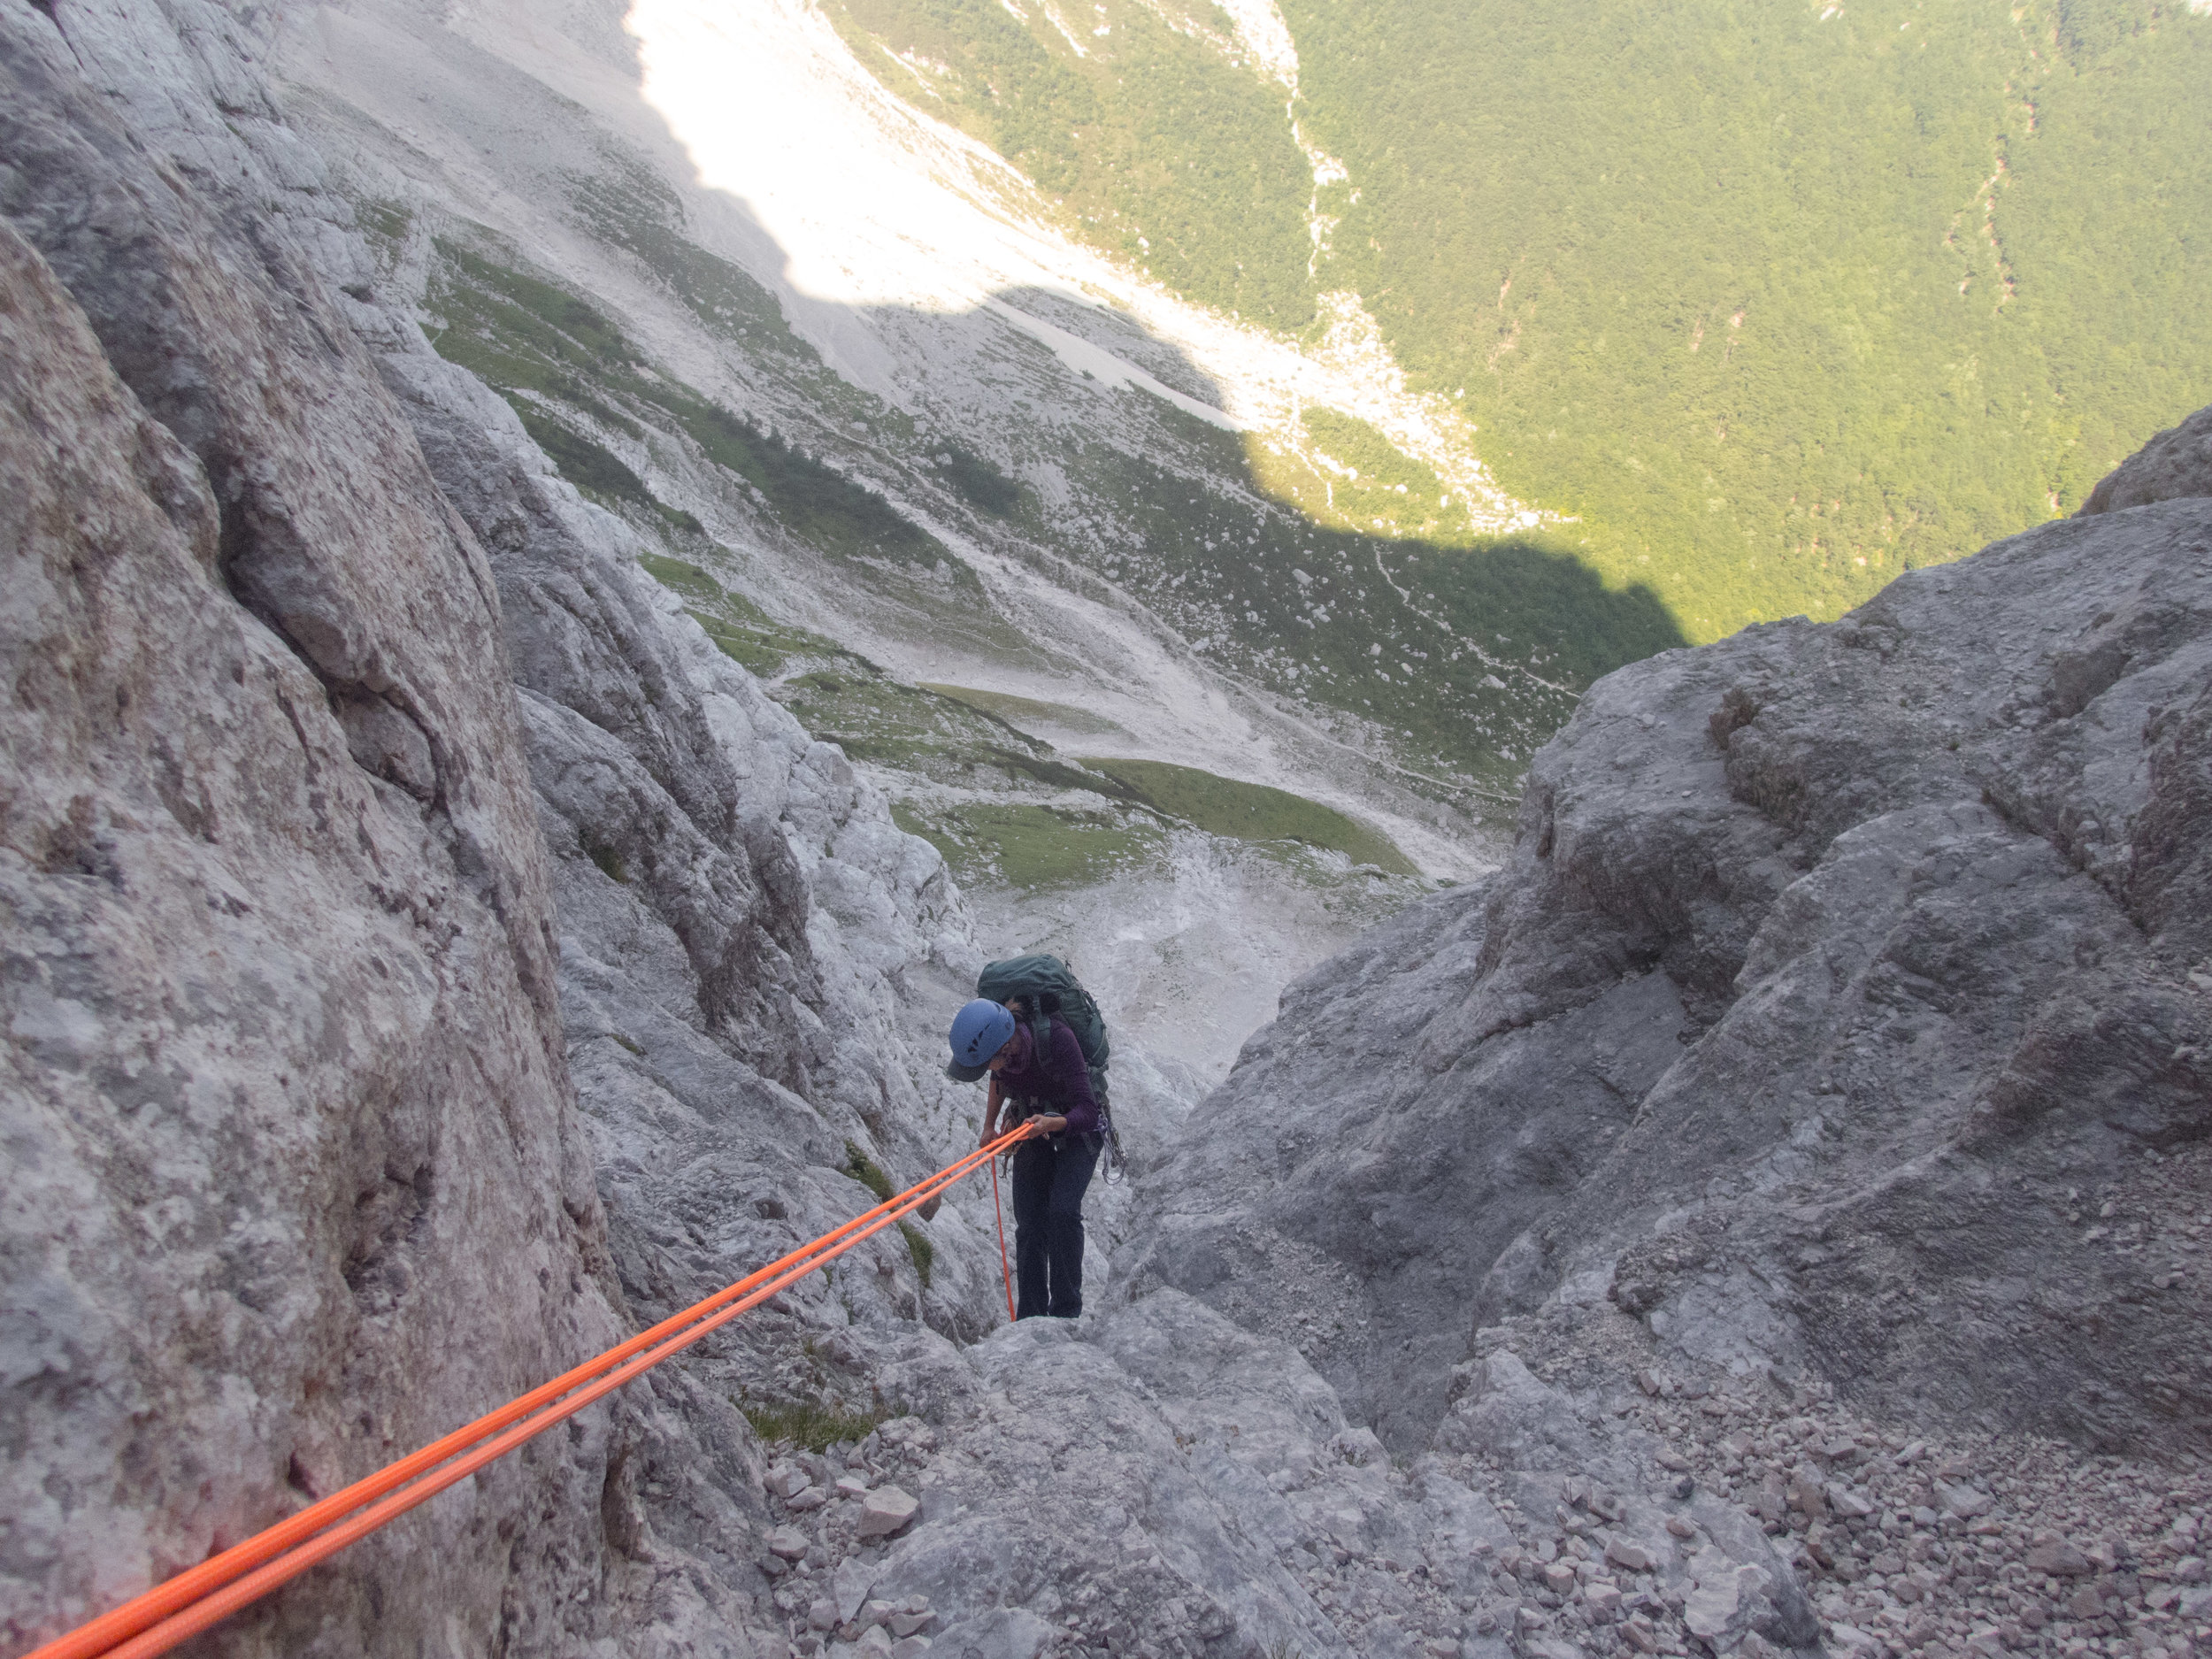 Bailing off Triglav in 2017.